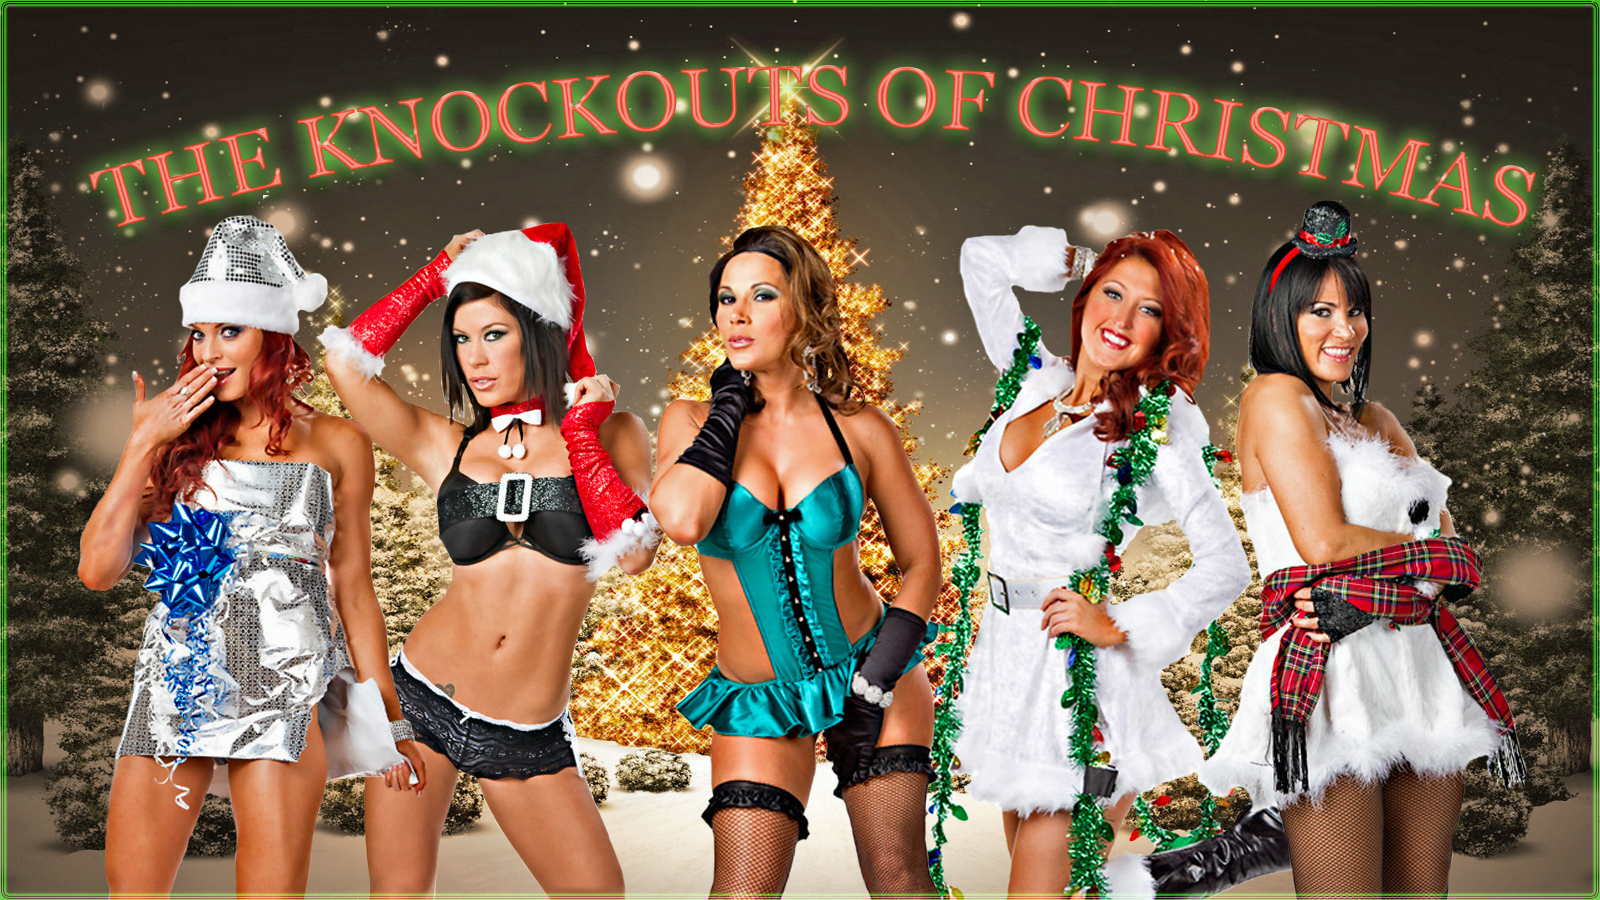 The Knockouts of Christmas wp